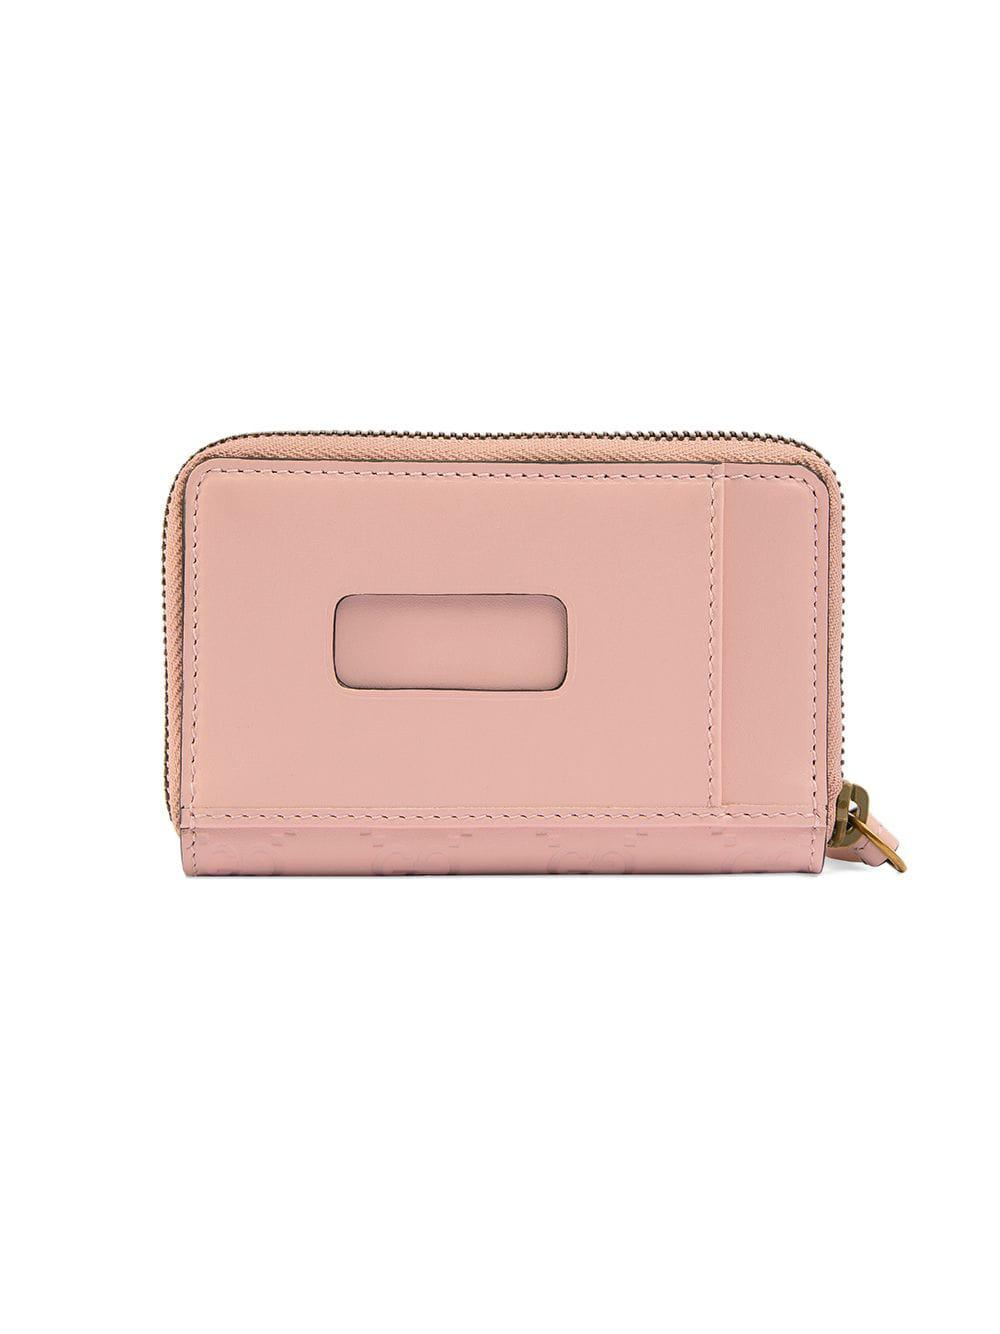 54689e8c5a69 Gucci Signature Card Case With Cat in Pink - Lyst